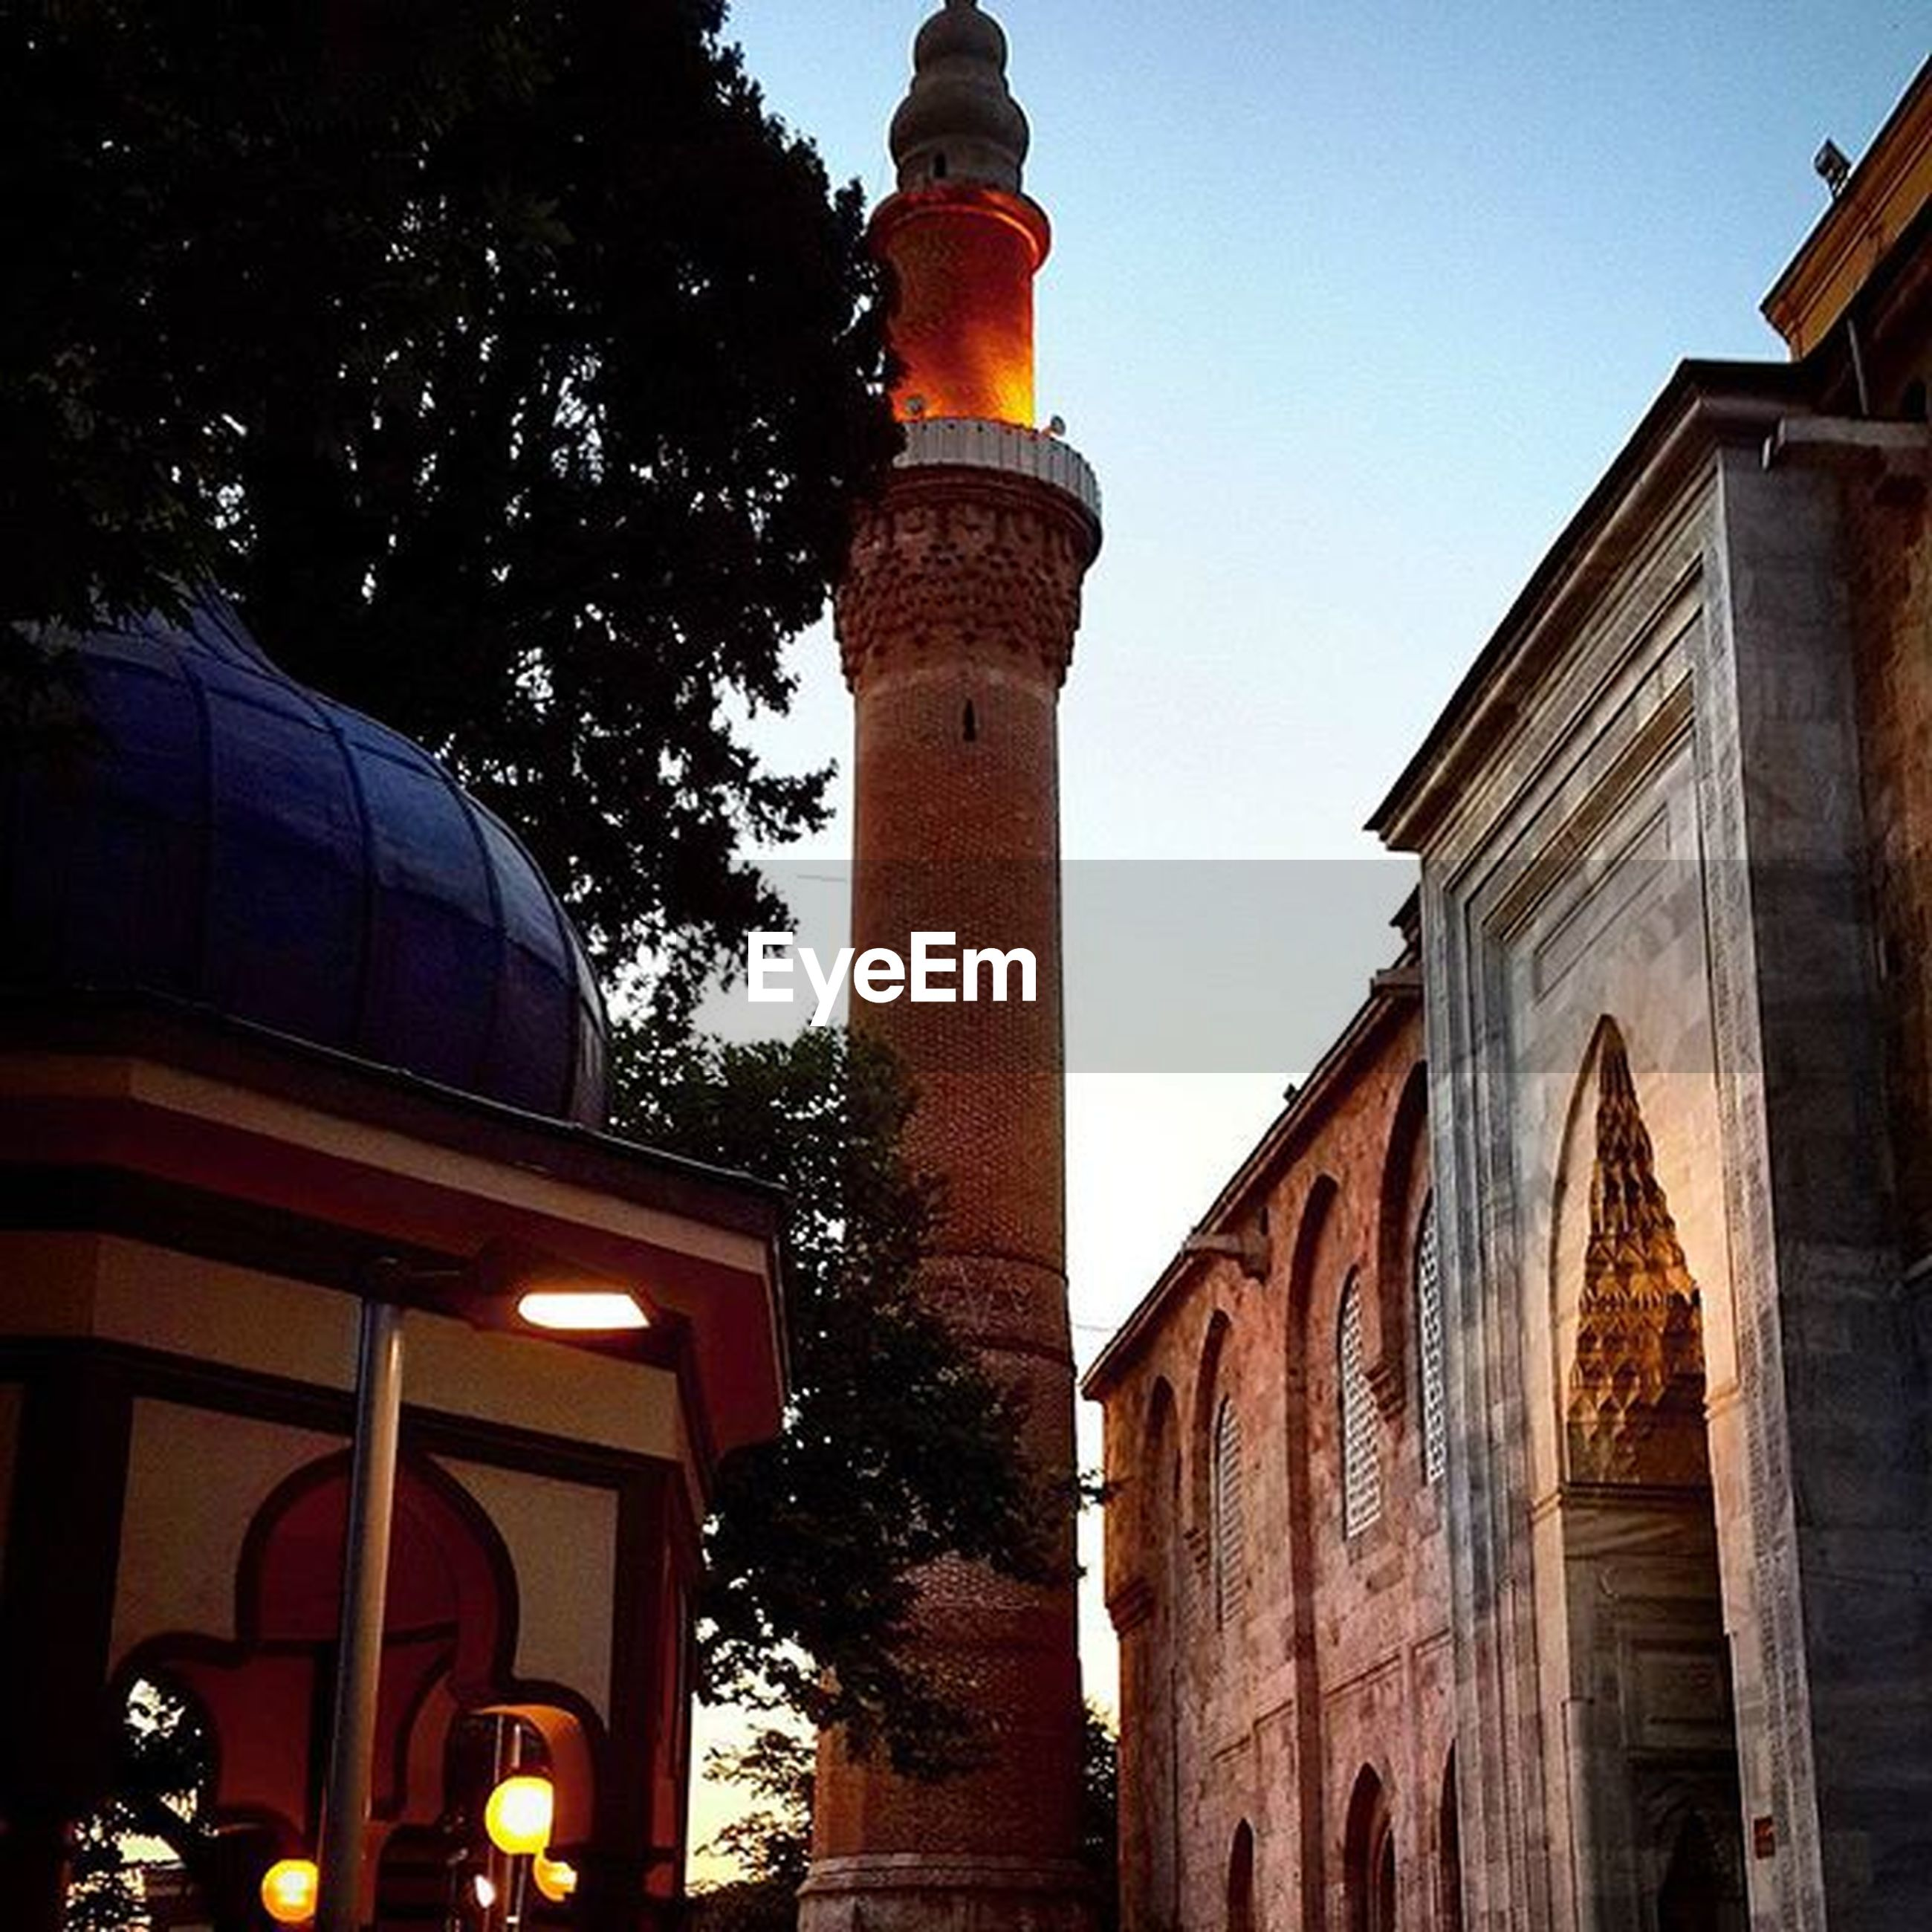 architecture, building exterior, built structure, low angle view, clear sky, sky, history, tower, travel destinations, city, outdoors, exterior, architectural column, no people, street light, illuminated, place of worship, lighting equipment, travel, famous place